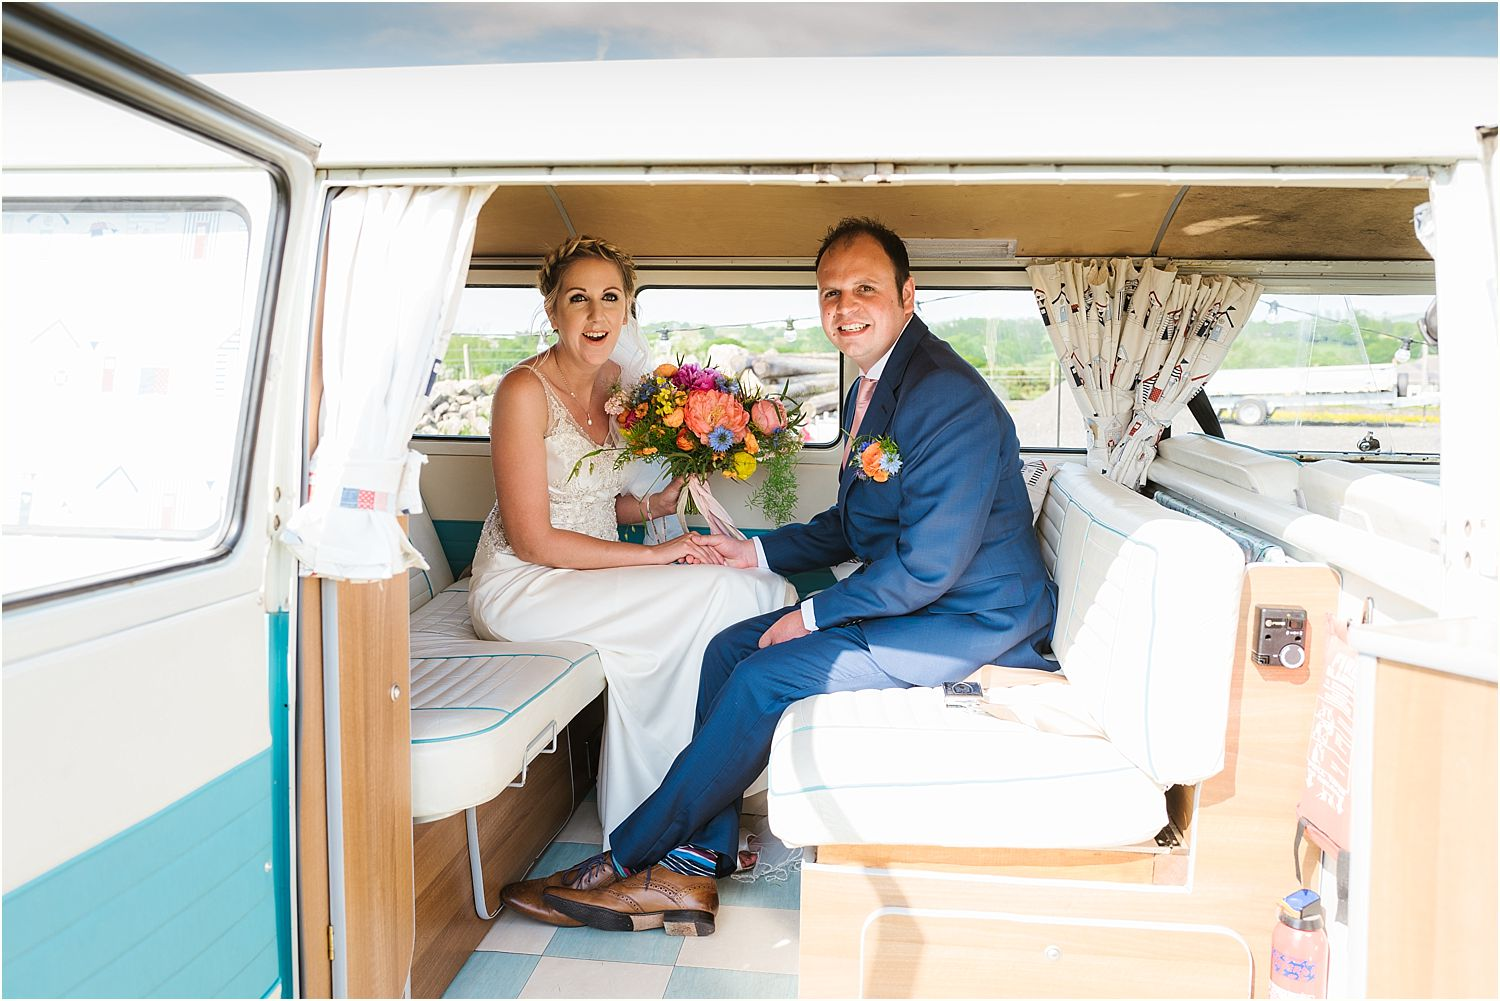 Bride and groom in camper van from Nostalgic Campers, bridal bouquest from Felicity Farm Flowers